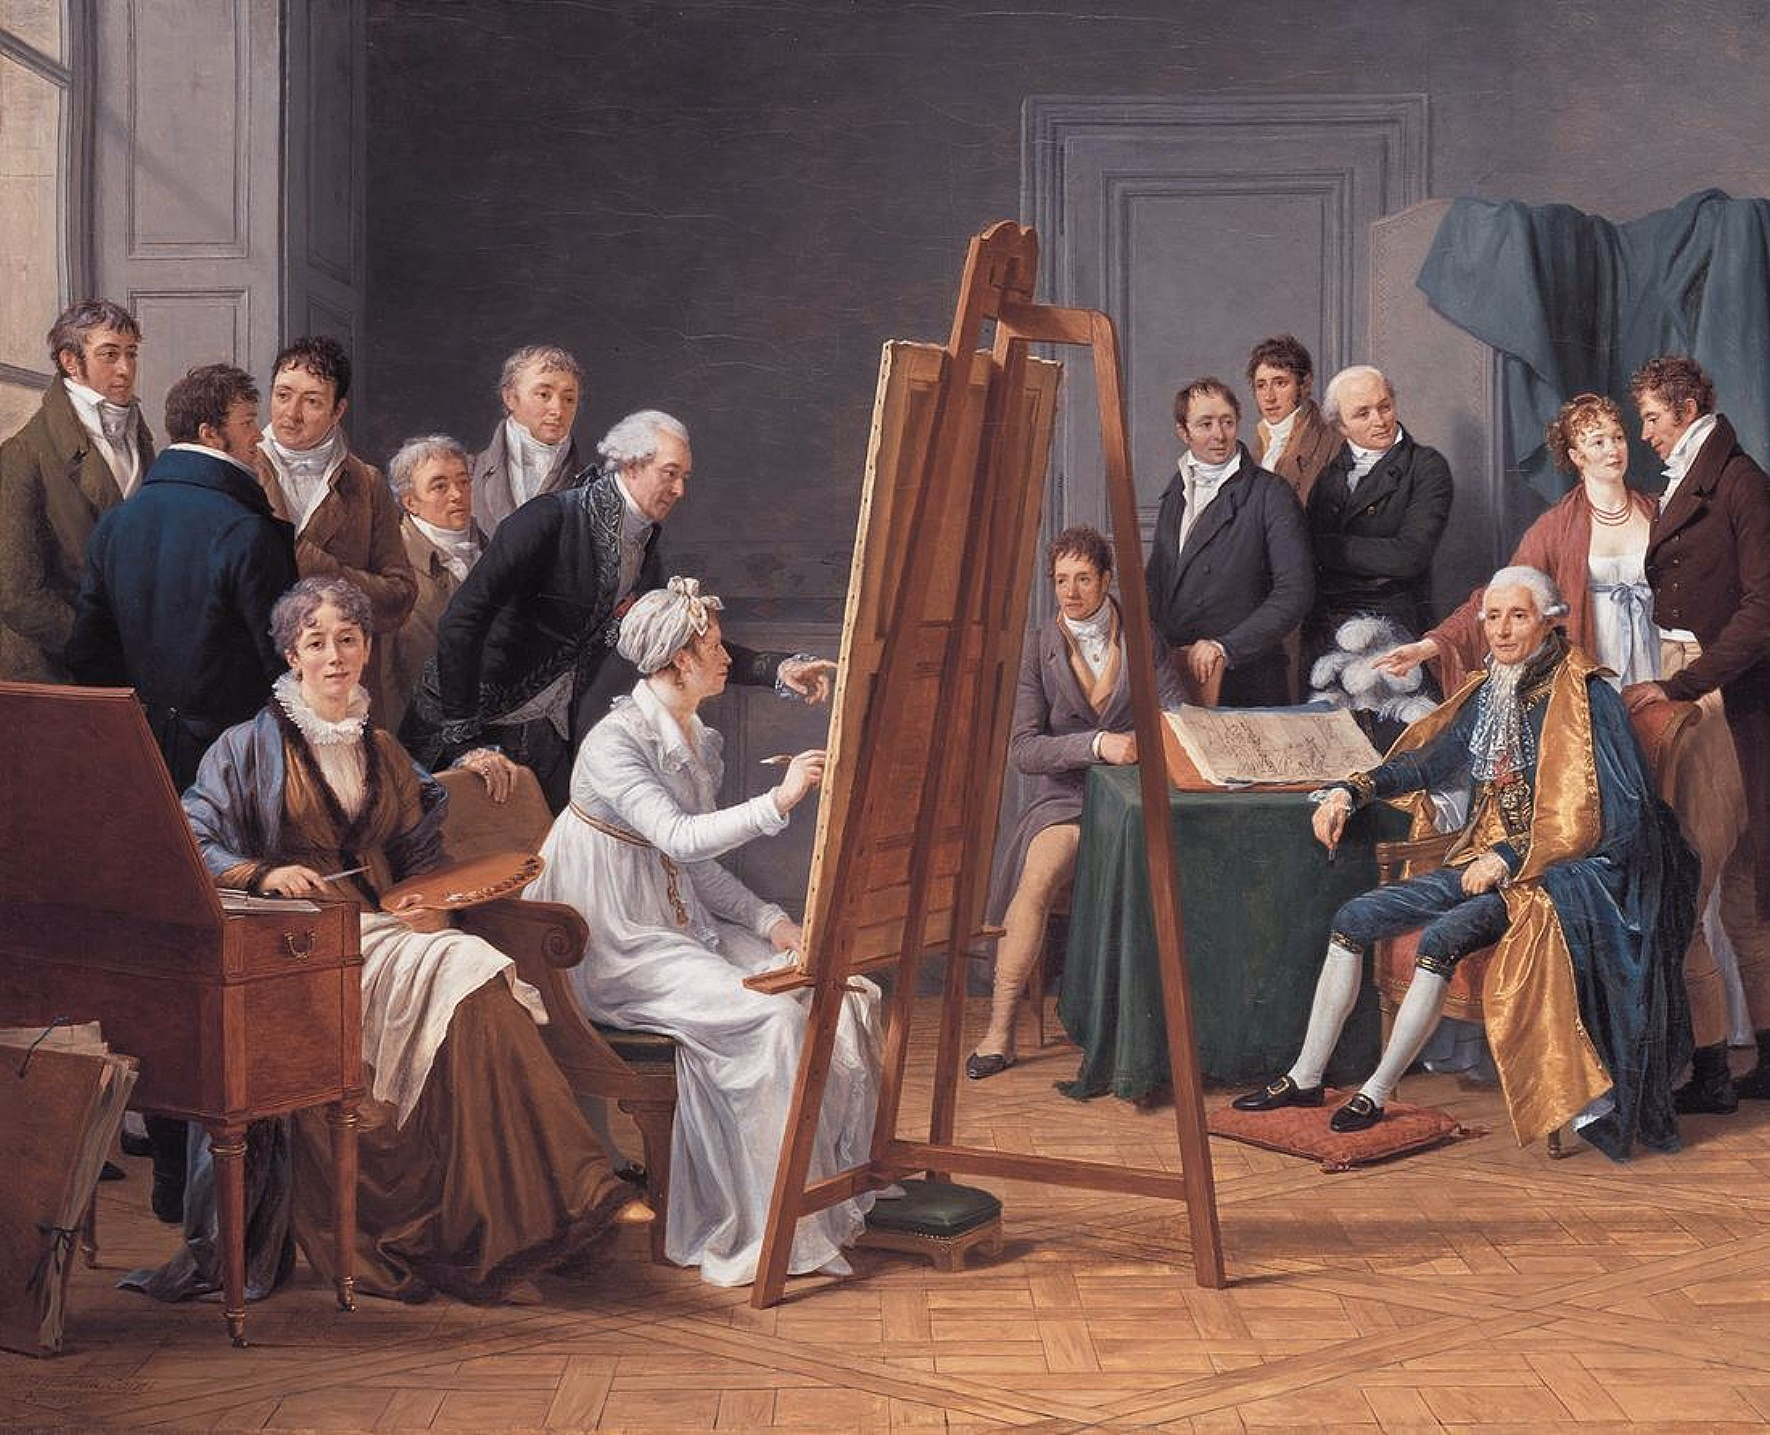 an analysis of the enlightenment and the role of the philosophes during the 18th century The enlightenment and the role of the philosophes the enlightenment is a name given by historians to an intellectual movement that was predominant in the western world during the 18th century.